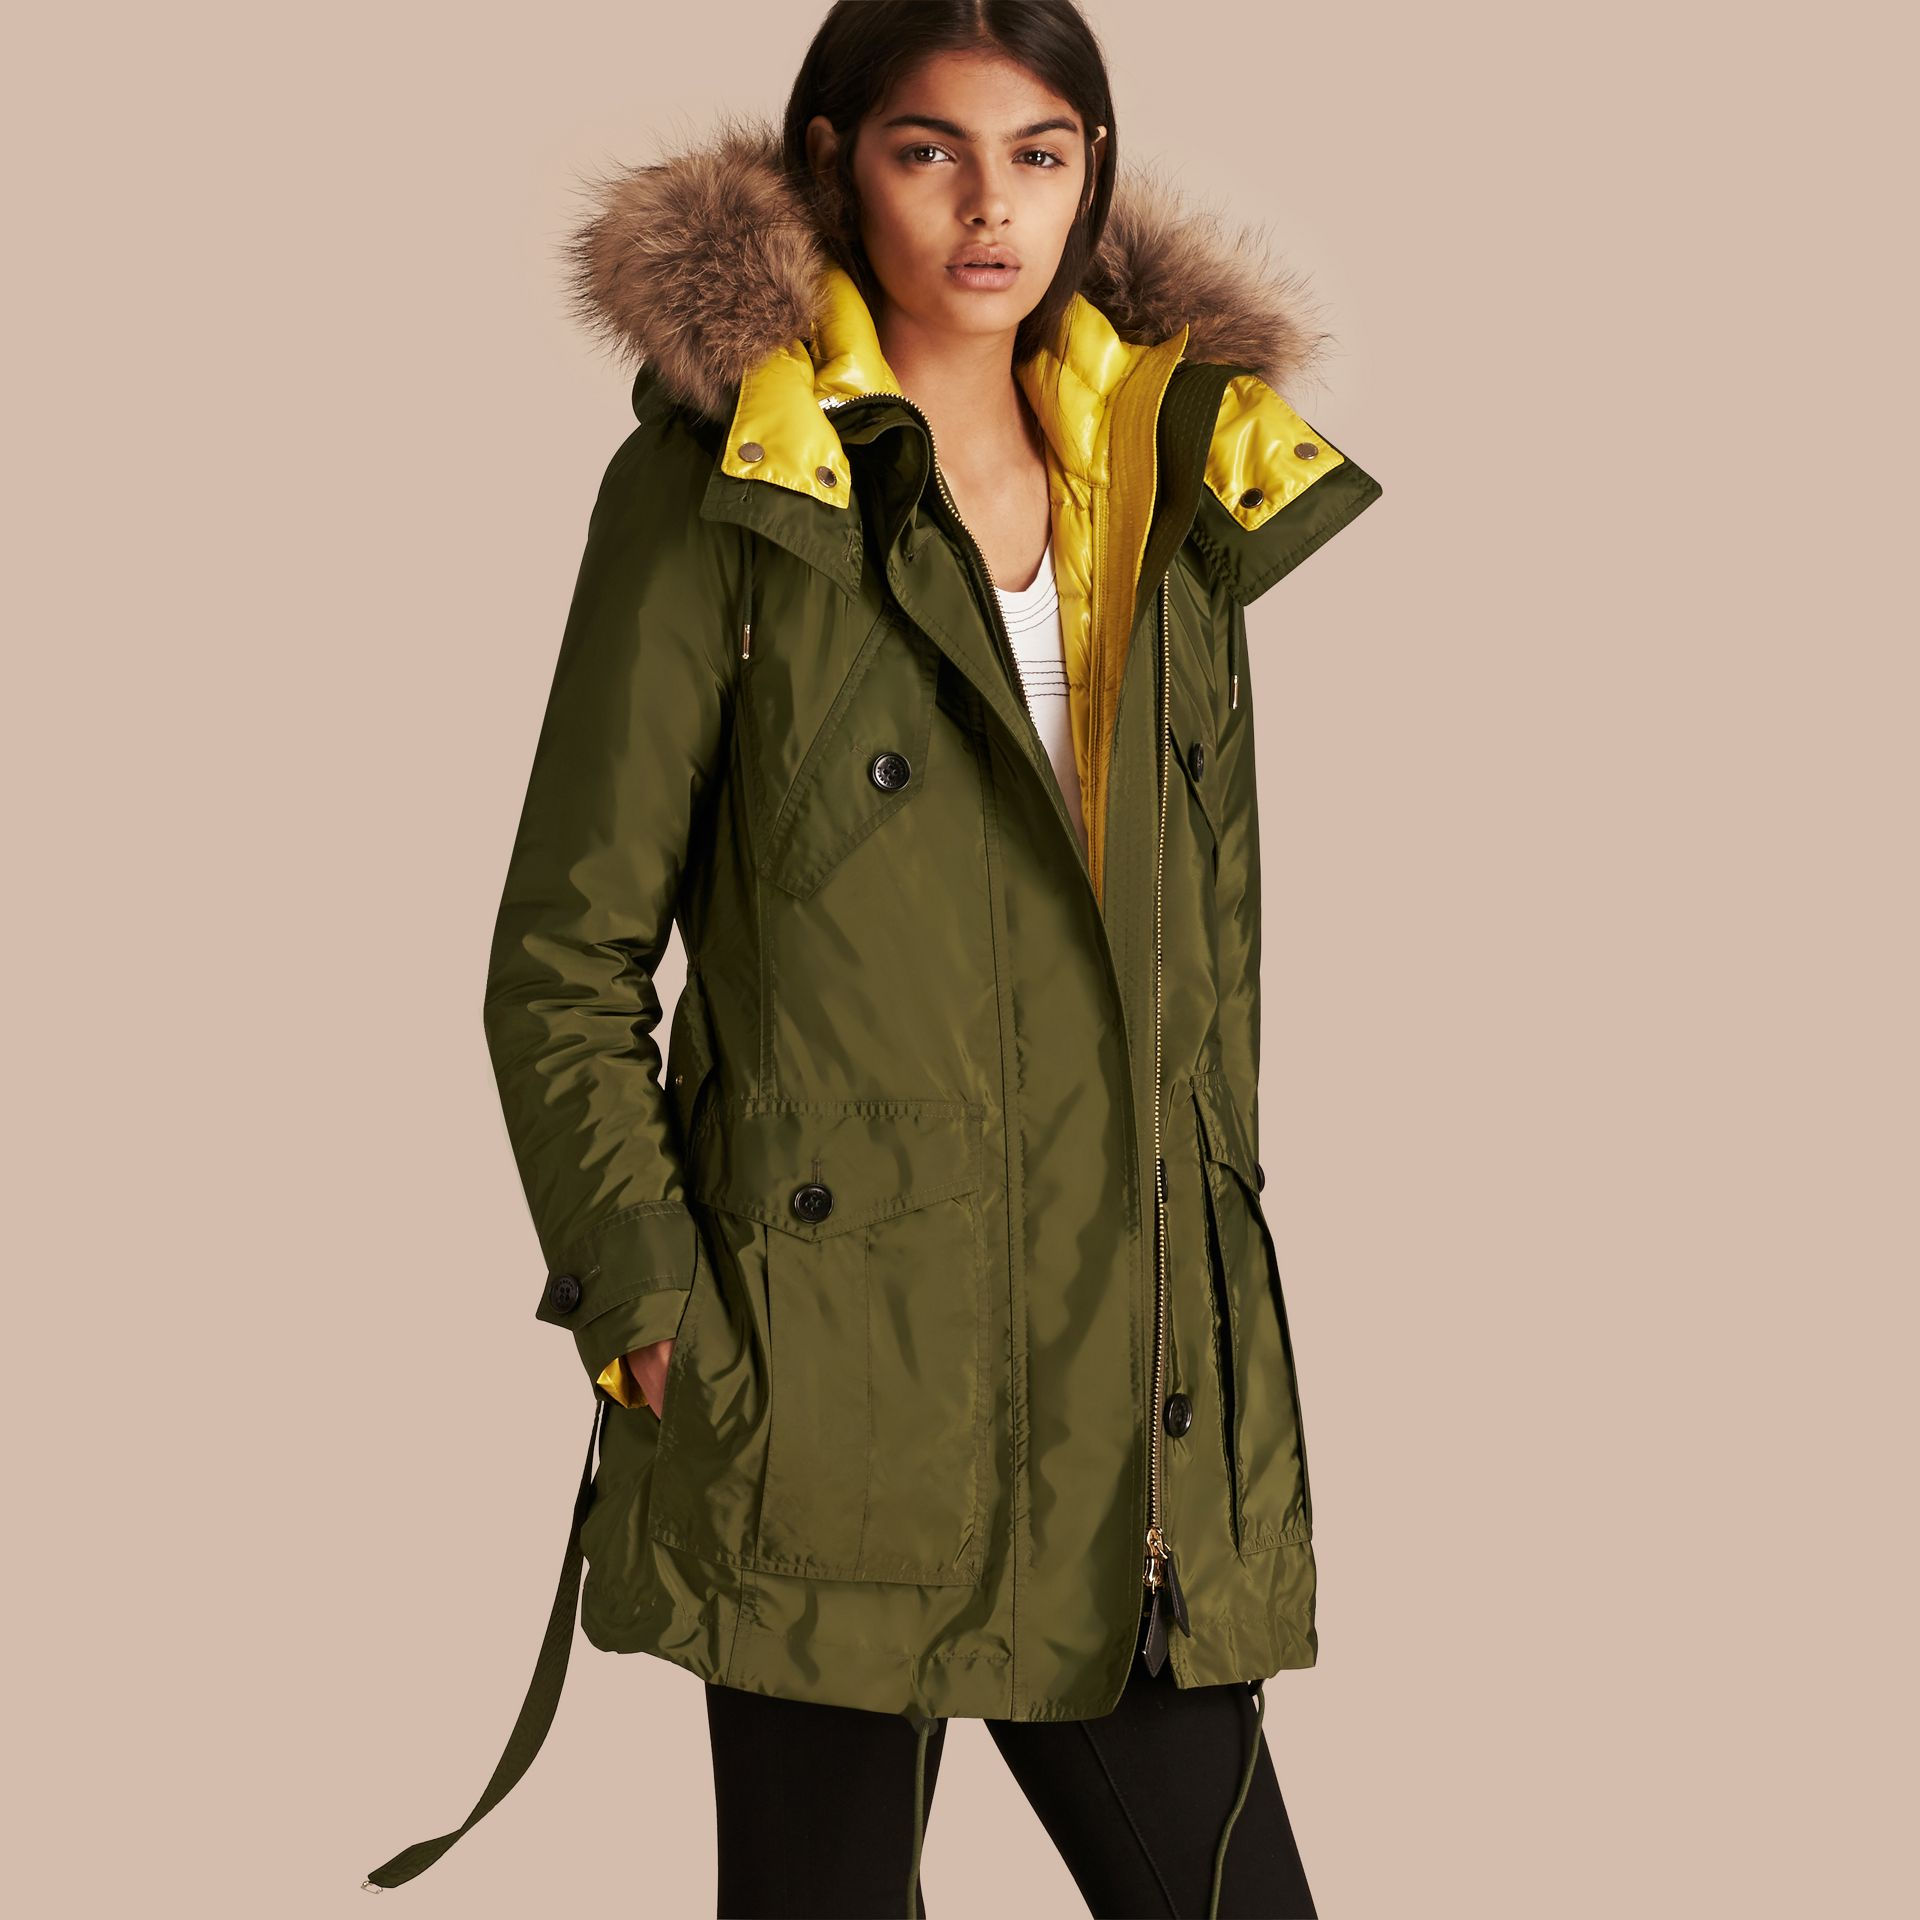 Bright moss green Fur-trimmed Parka with Detachable Down-filled Jacket Bright Moss Green - gallery image 1